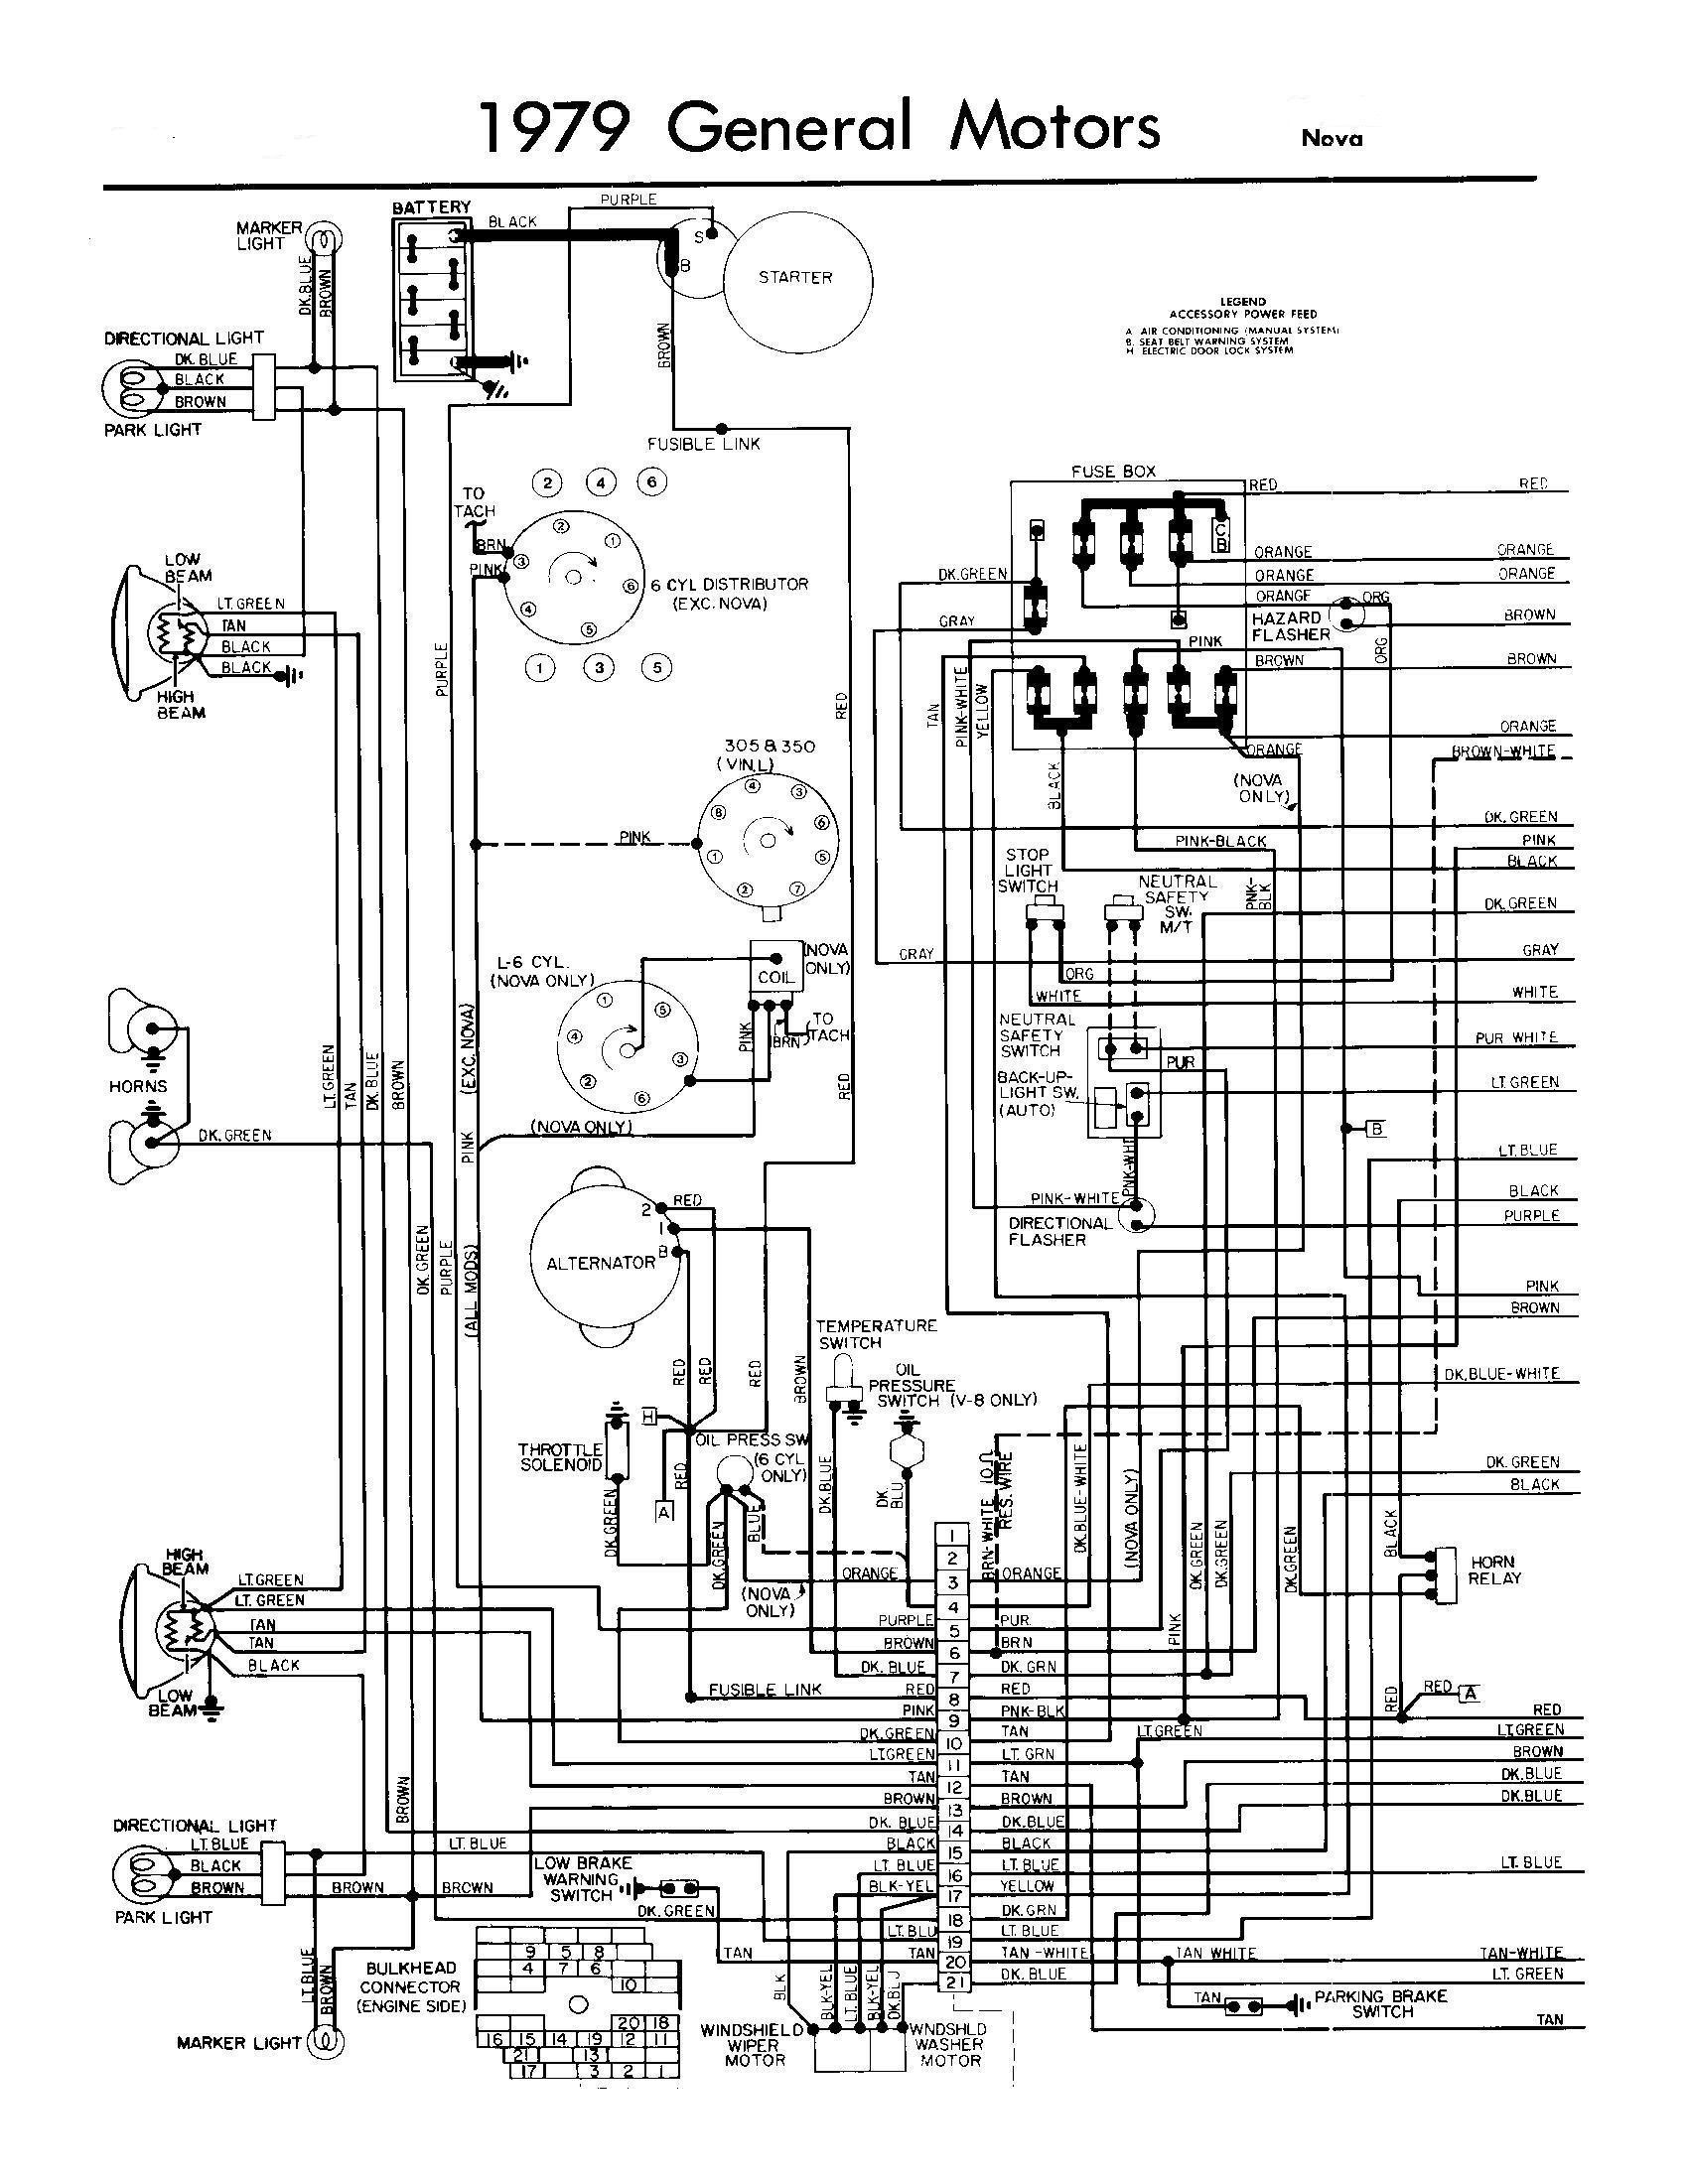 1971 corvette ignition switch wiring diagram